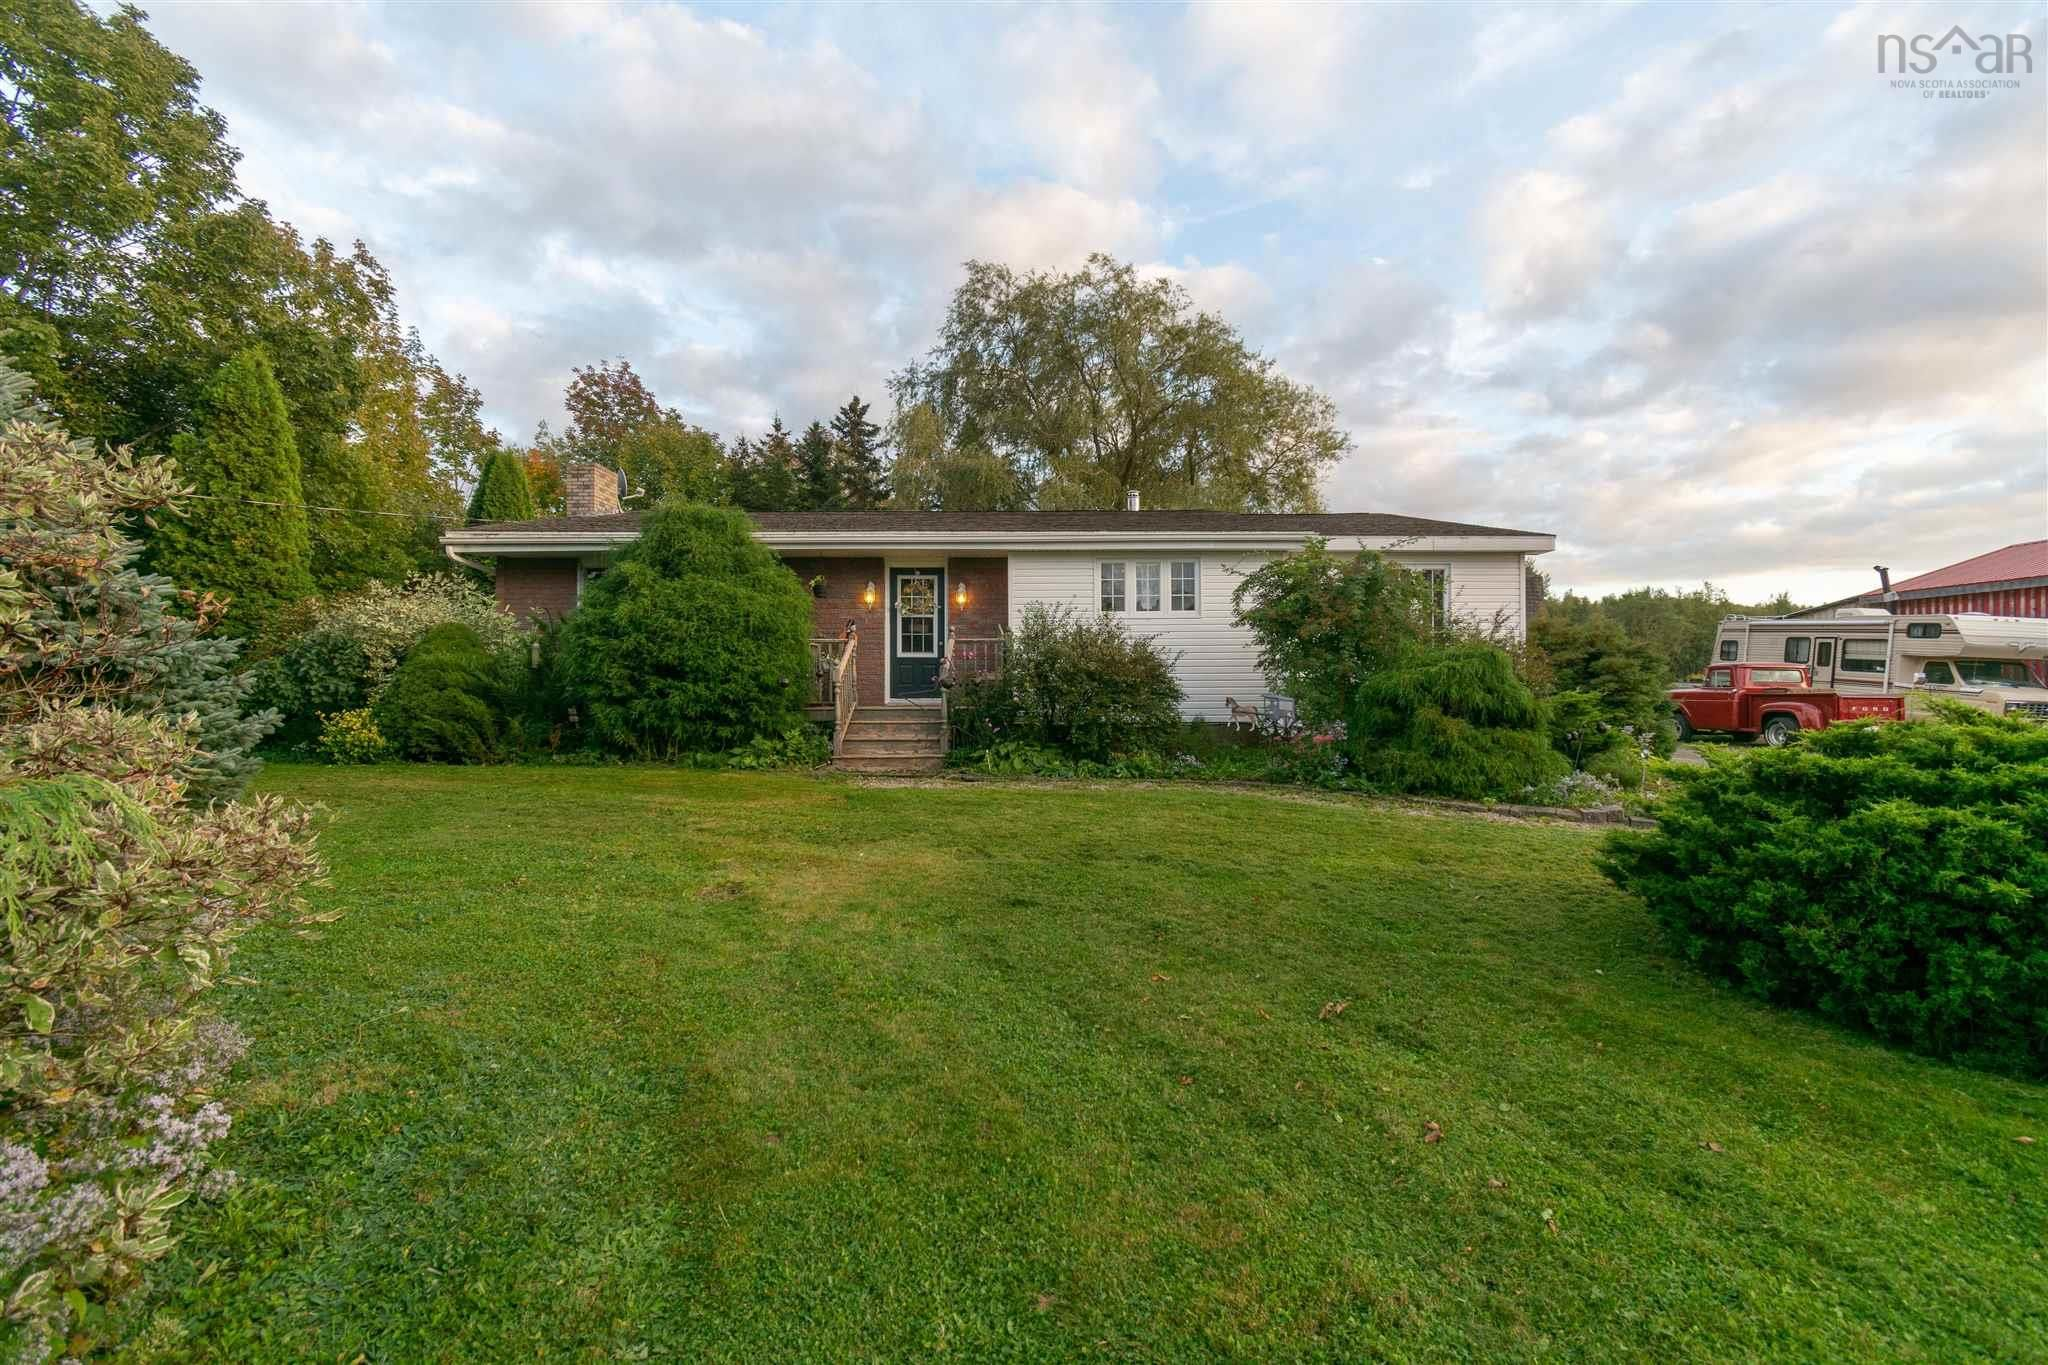 Main Photo: 7140 Highway 201 in South Williamston: 400-Annapolis County Residential for sale (Annapolis Valley)  : MLS®# 202124482